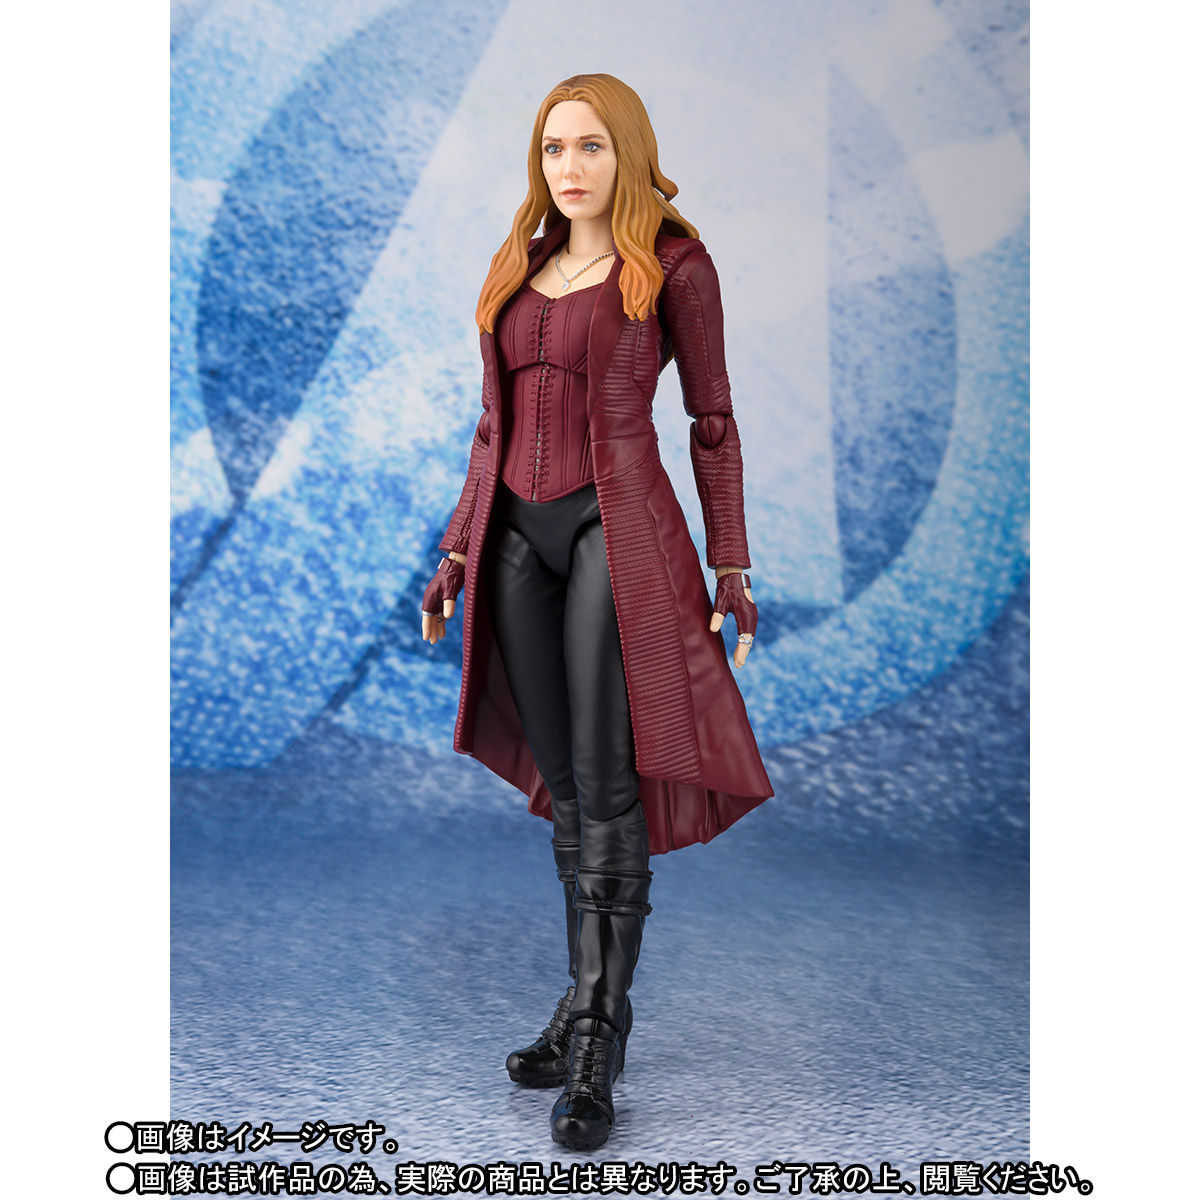 Giappone Versione Avengers//Infinity War BANDAI S.H Figuarts Scarlet Witch